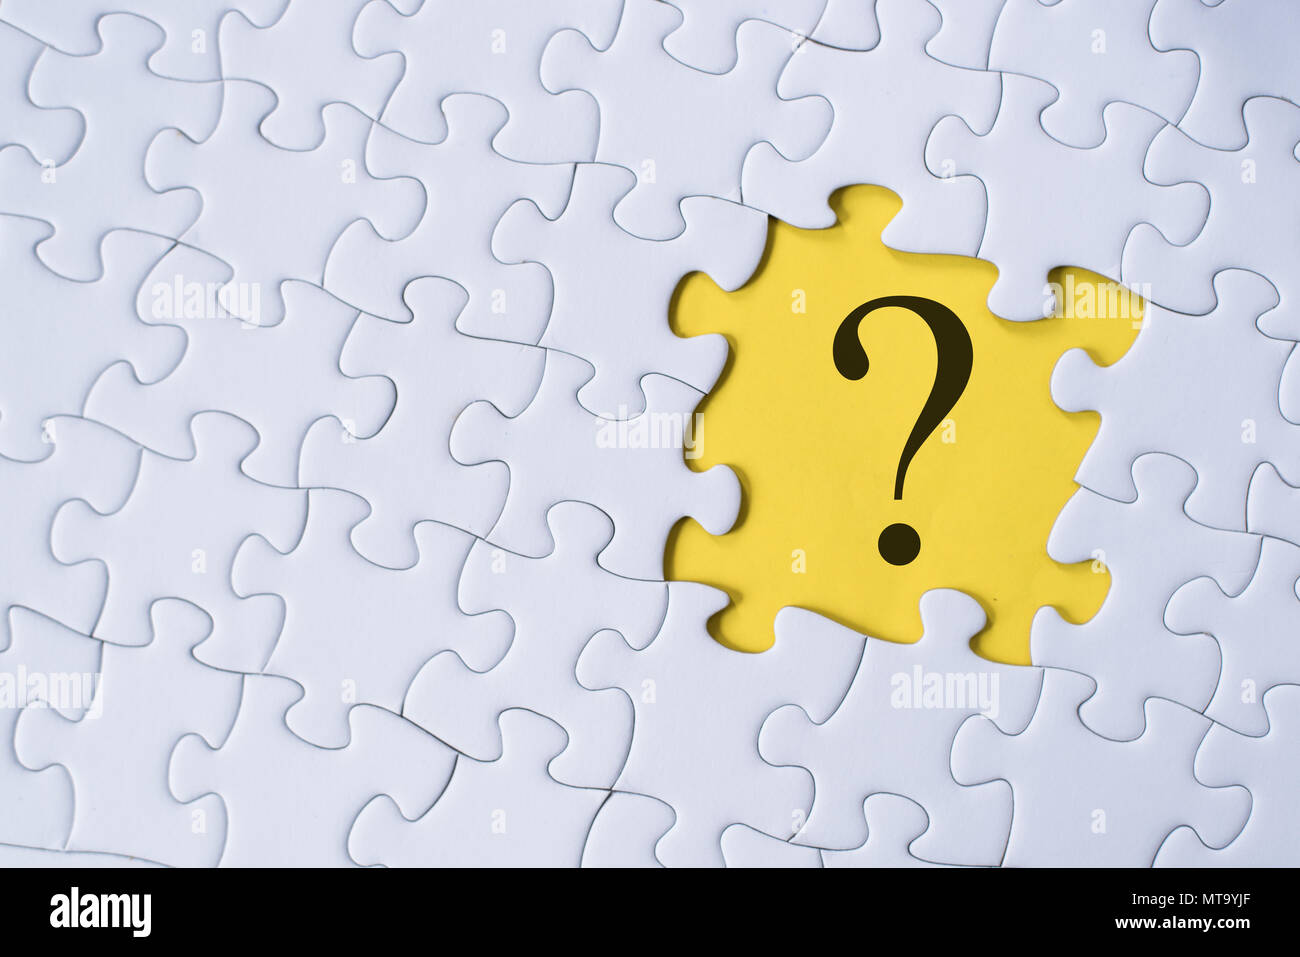 question mark on jigsaw puzzle with yellow background. question, faq and q&a concept - Stock Image